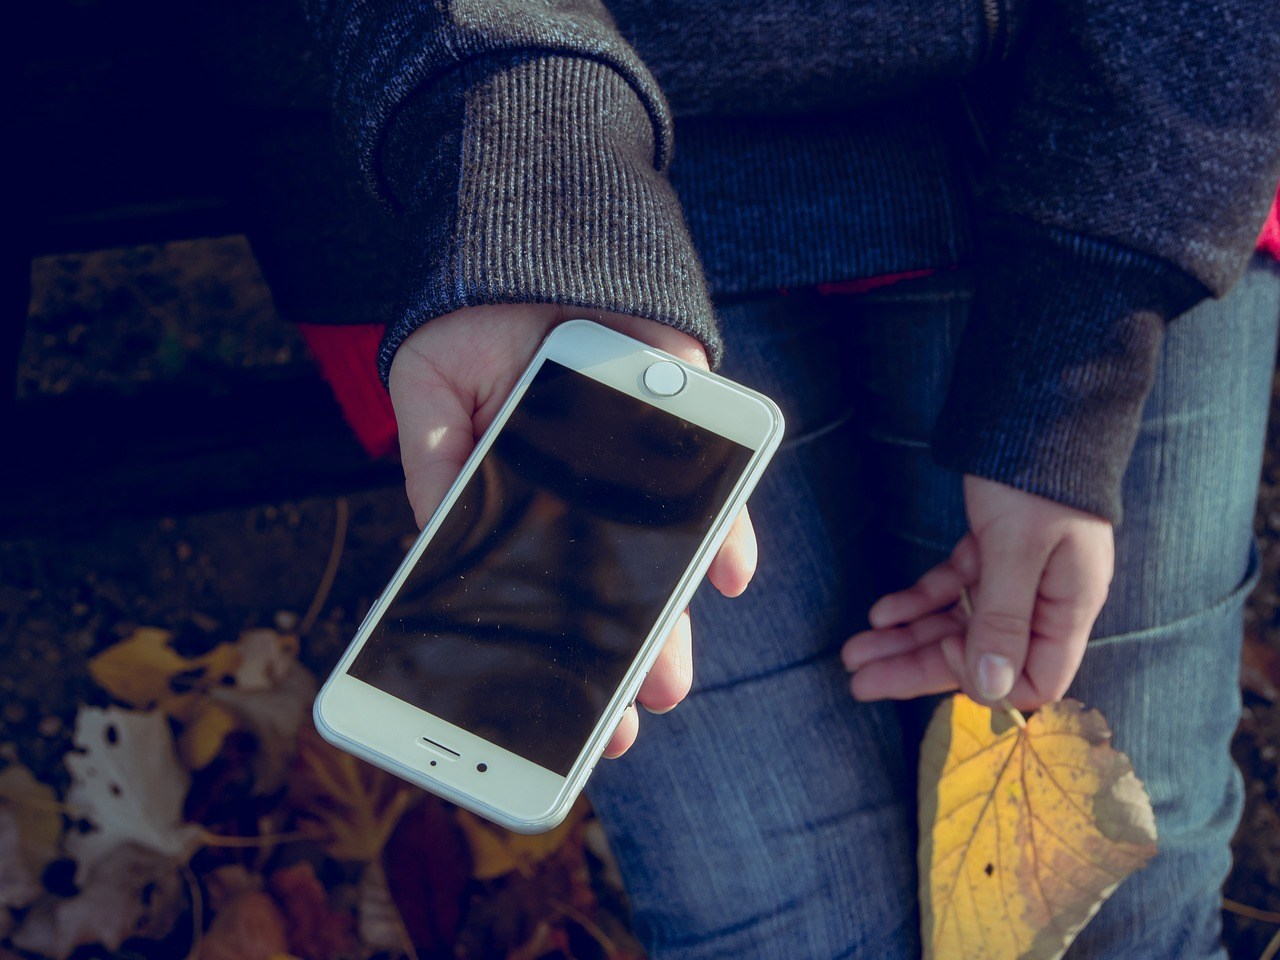 Technology Overuse: Do We Need to Wait Longer to Give Kids a Phone?